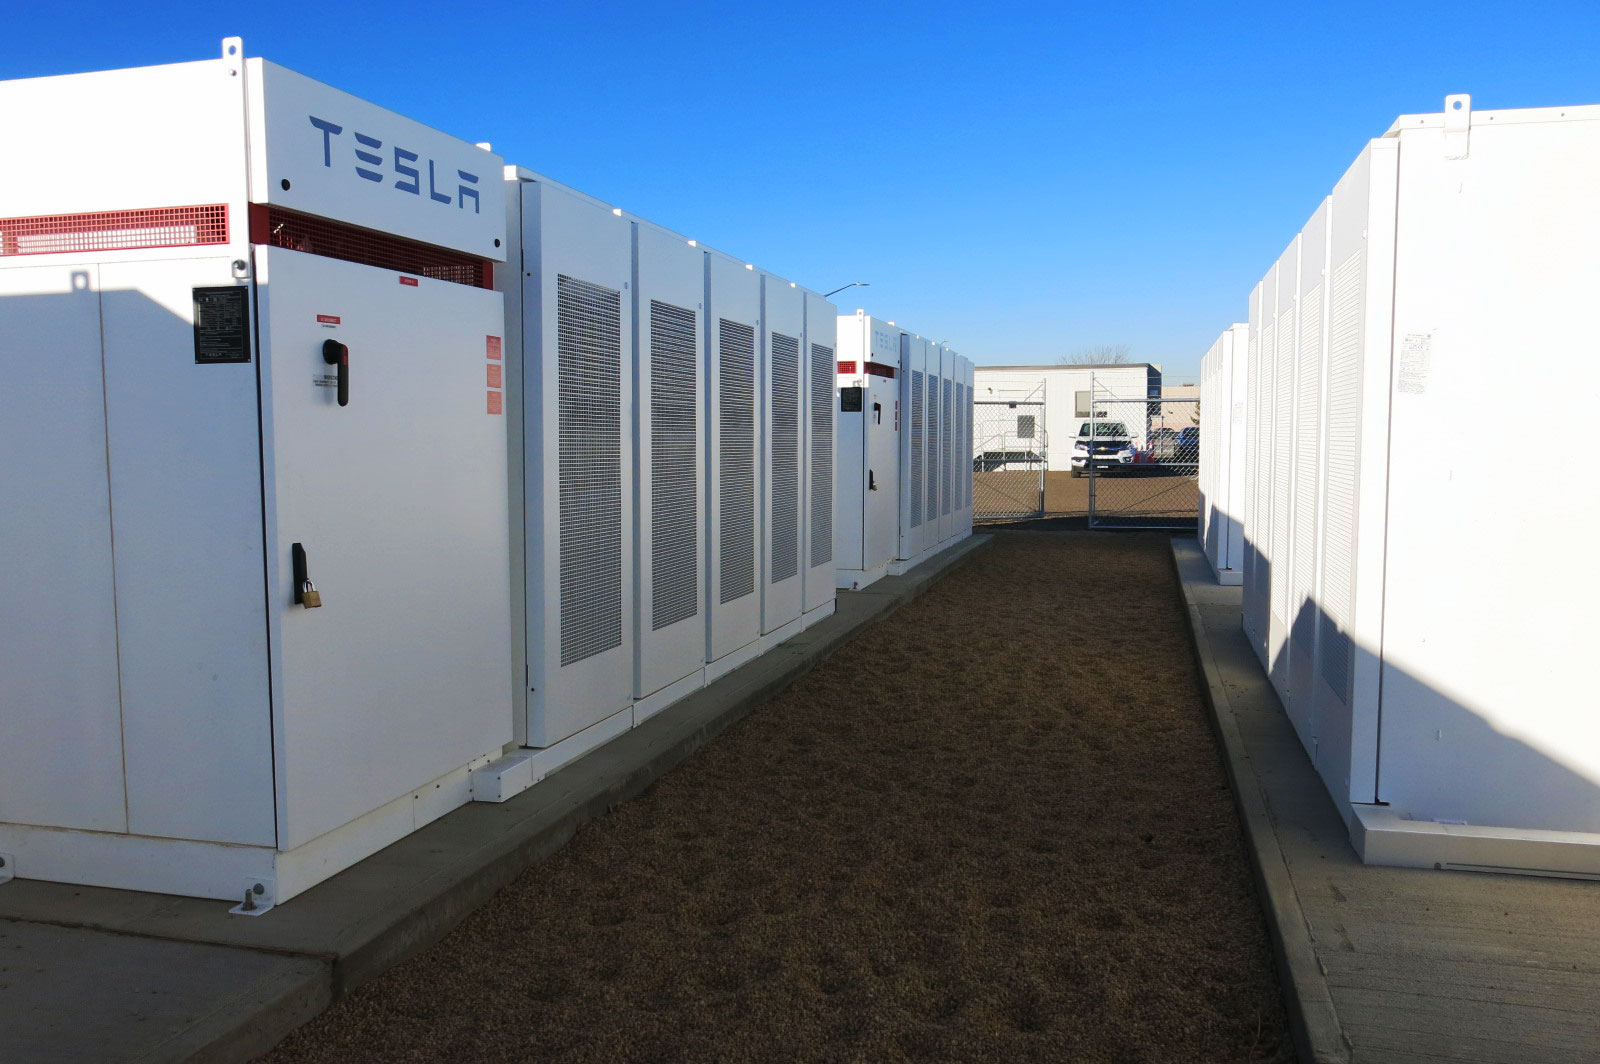 Colorado's Largest Battery Comes Online As The State Pivots To Cleaner Energy